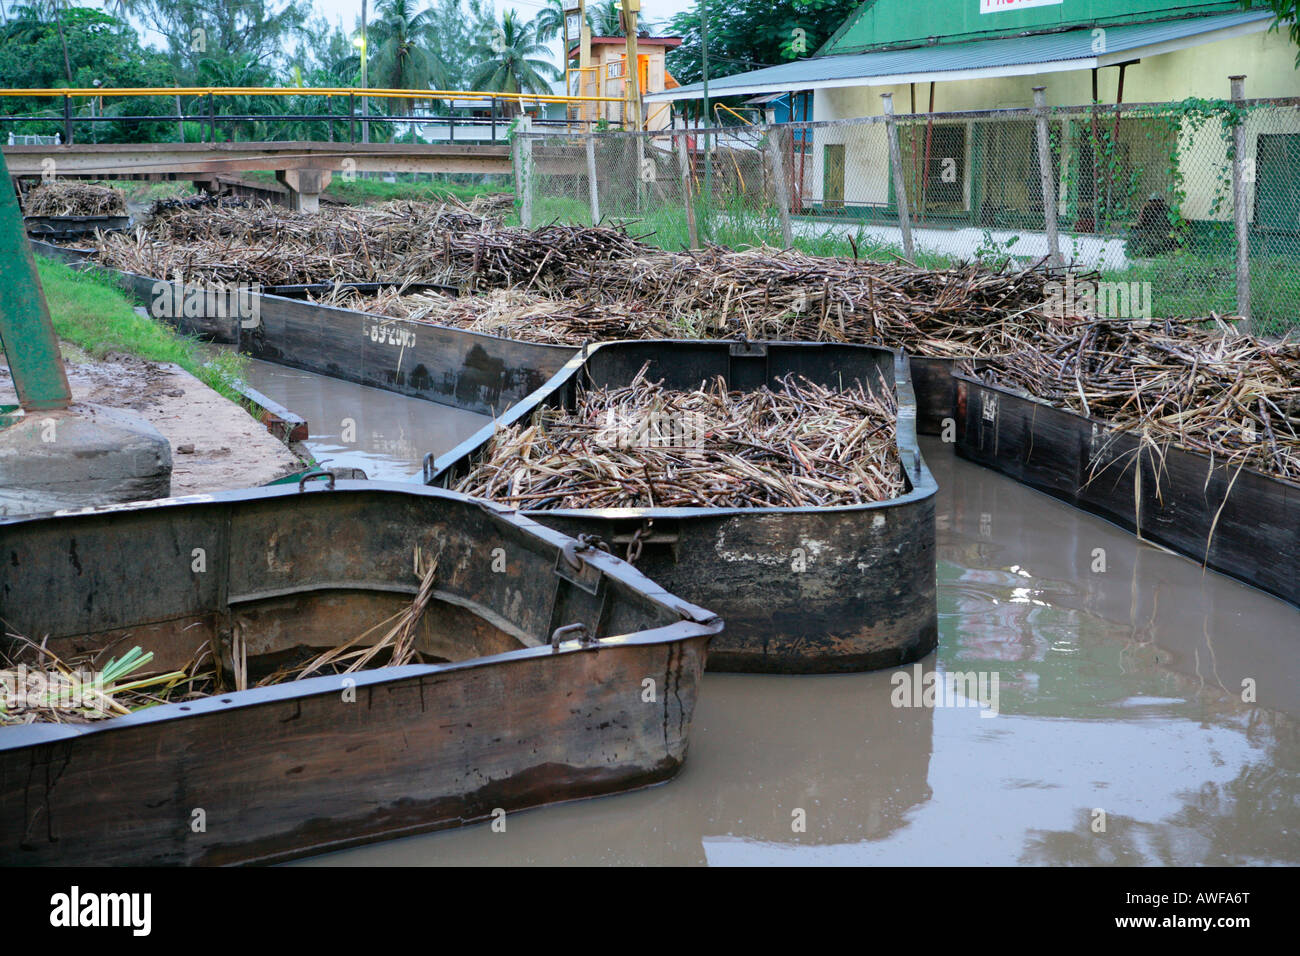 Barges used for the transportation of sugar cane, Demerara Province, Guyana, South America - Stock Image